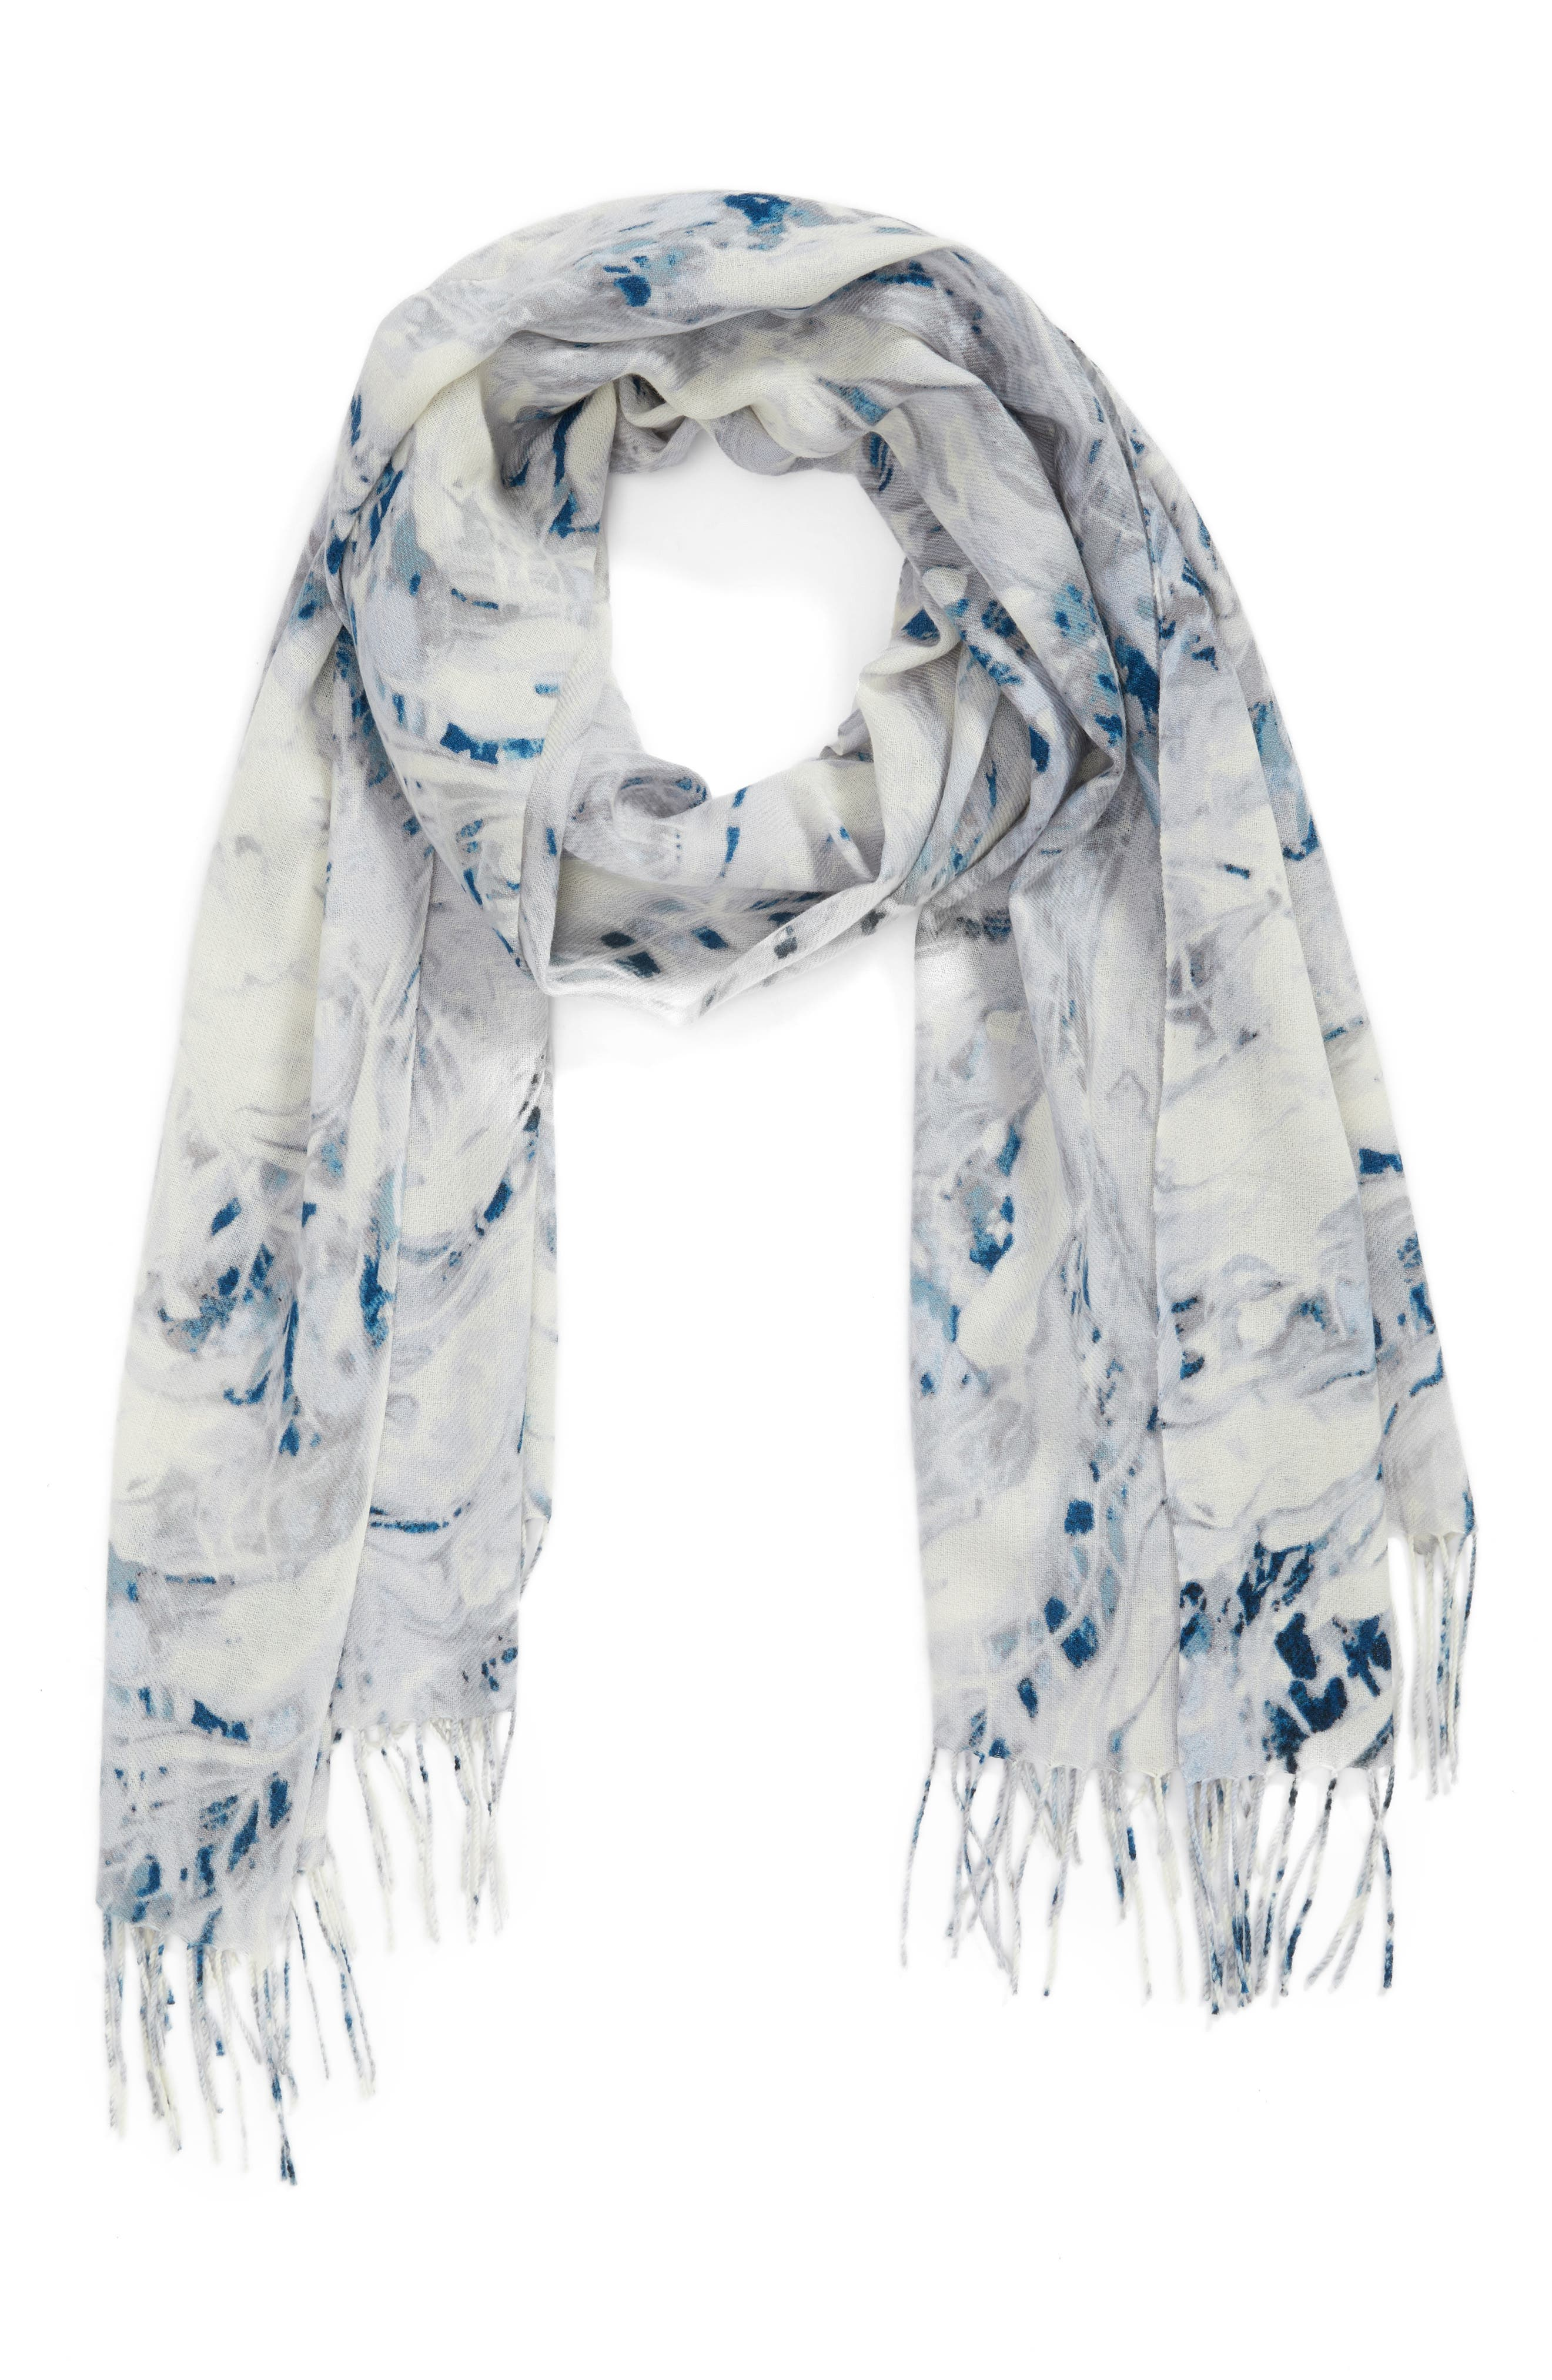 Marble Tissue Wool & Cashmere Scarf,                             Alternate thumbnail 2, color,                             020